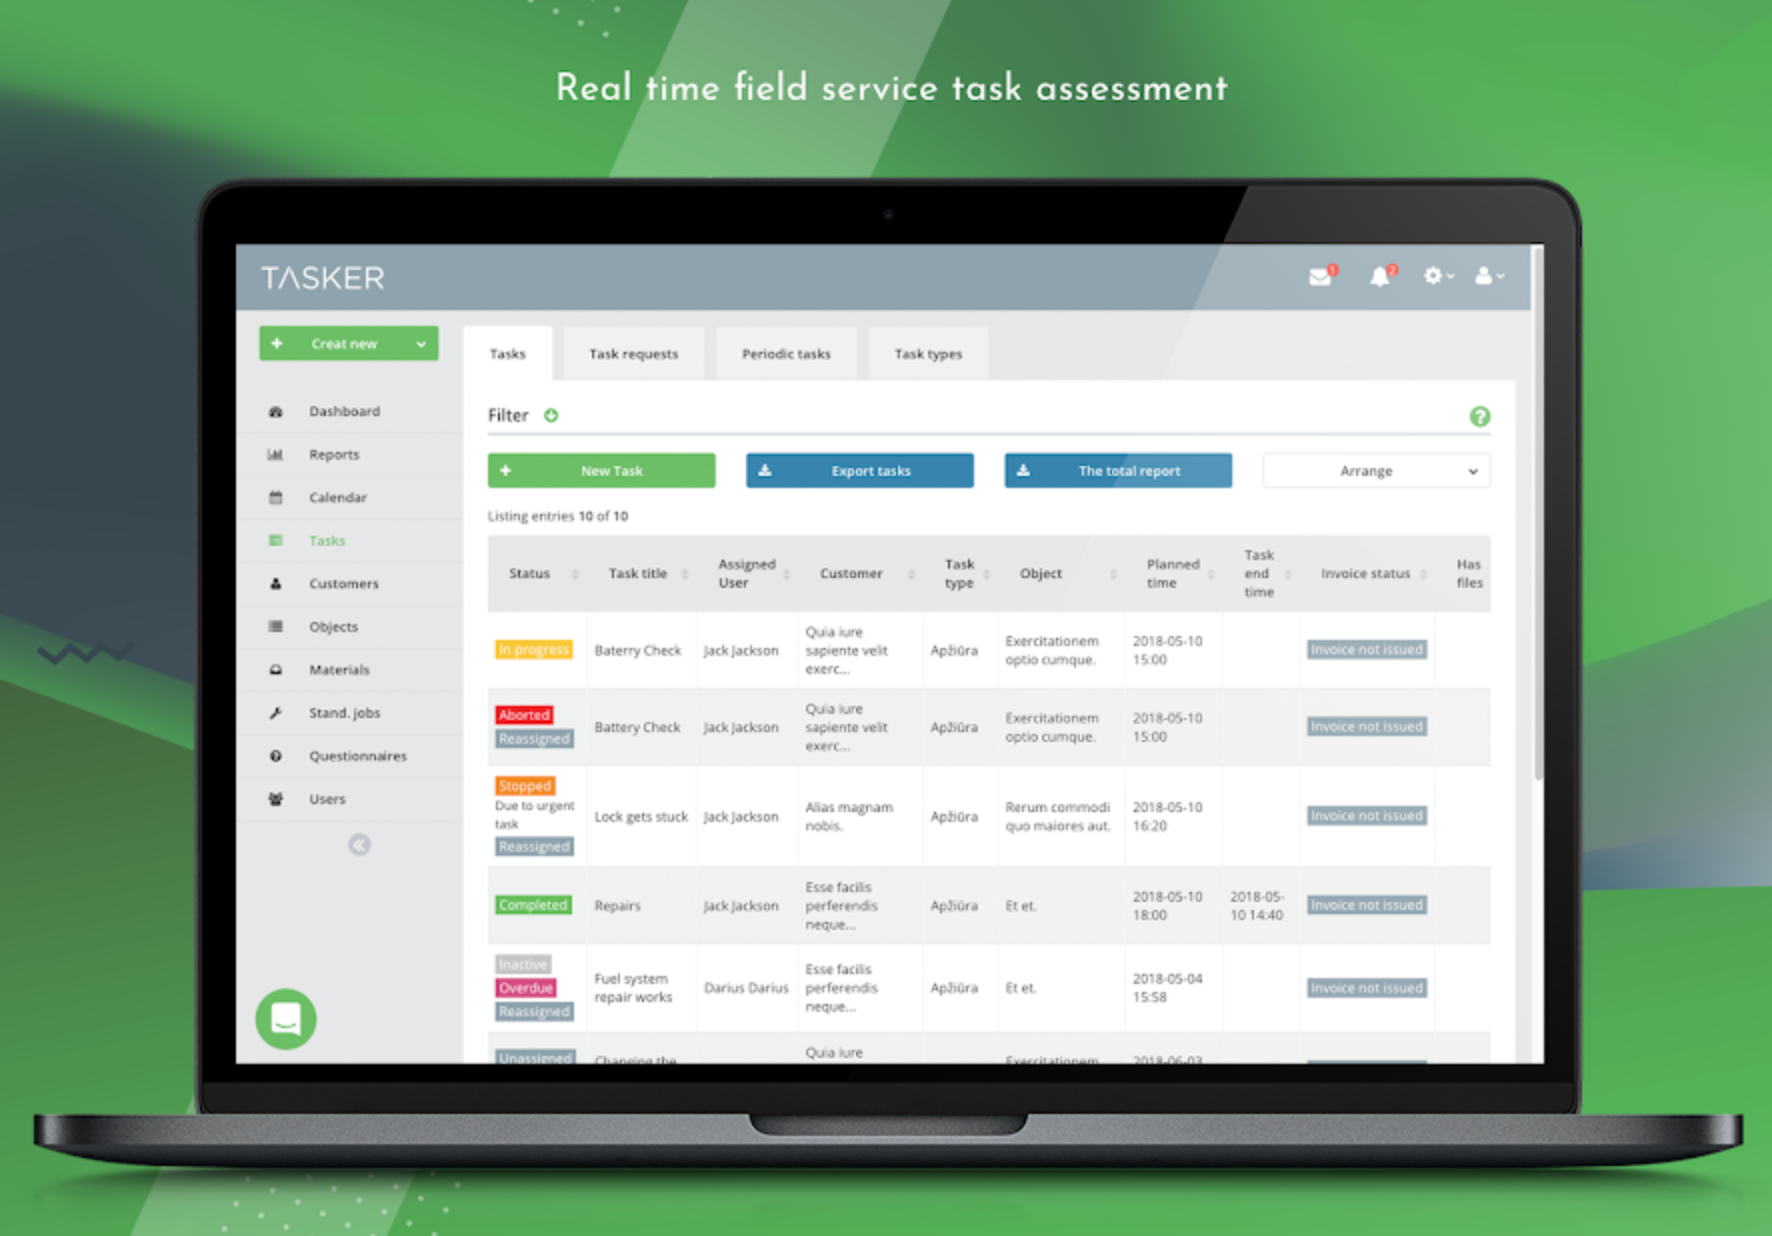 View field service task assessments in real time